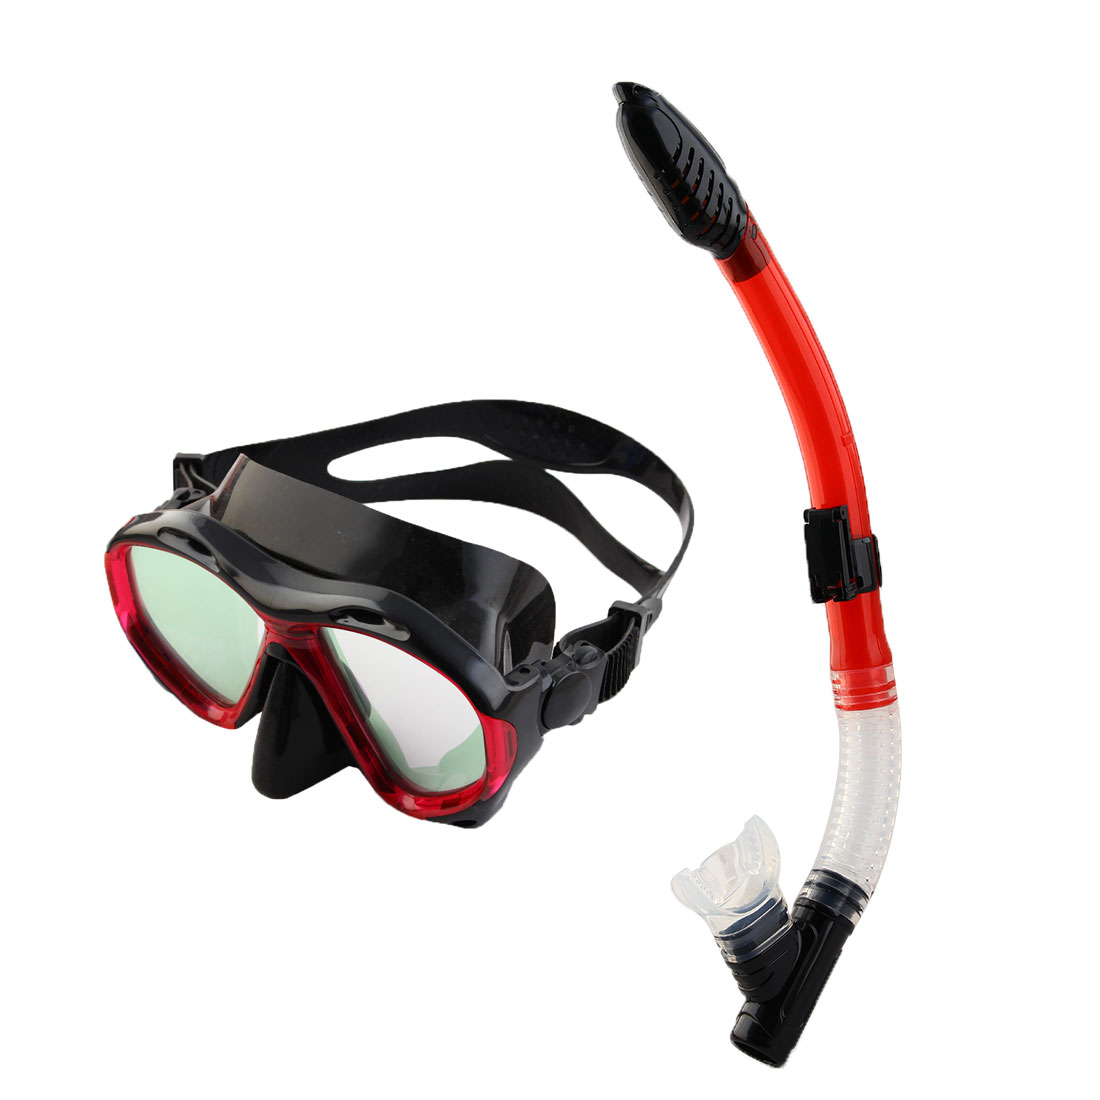 Dry Snorkeling Set Frameless Diving Mask Swimming Goggles Snorkel Tube Red by Unique-Bargains